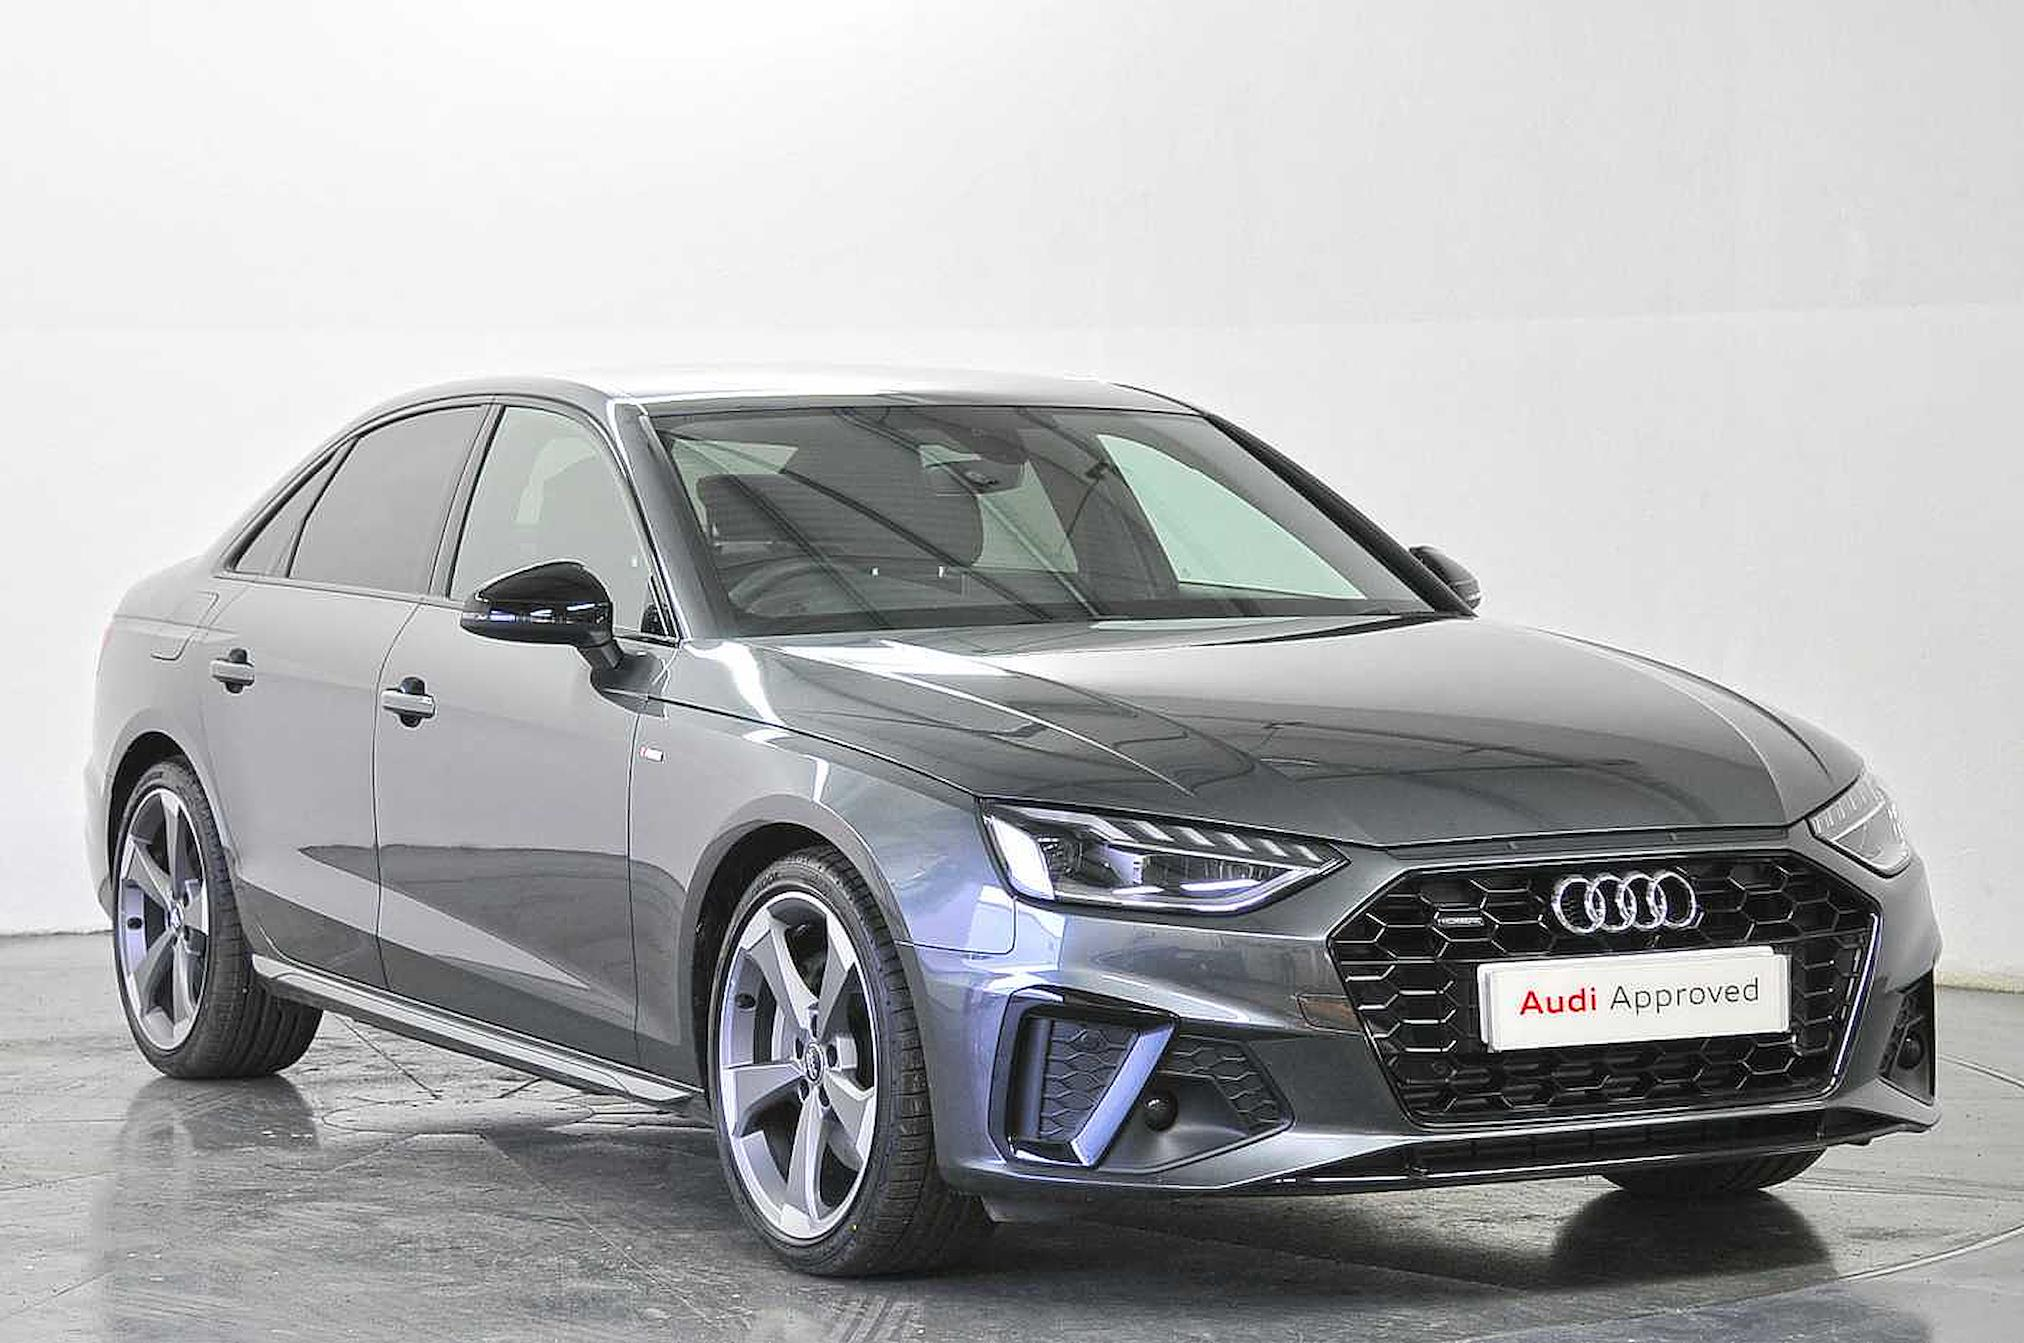 Nearly New A4 Audi 45 Tfsi Quattro Black Edition 4dr S Tronic 2020 Lookers